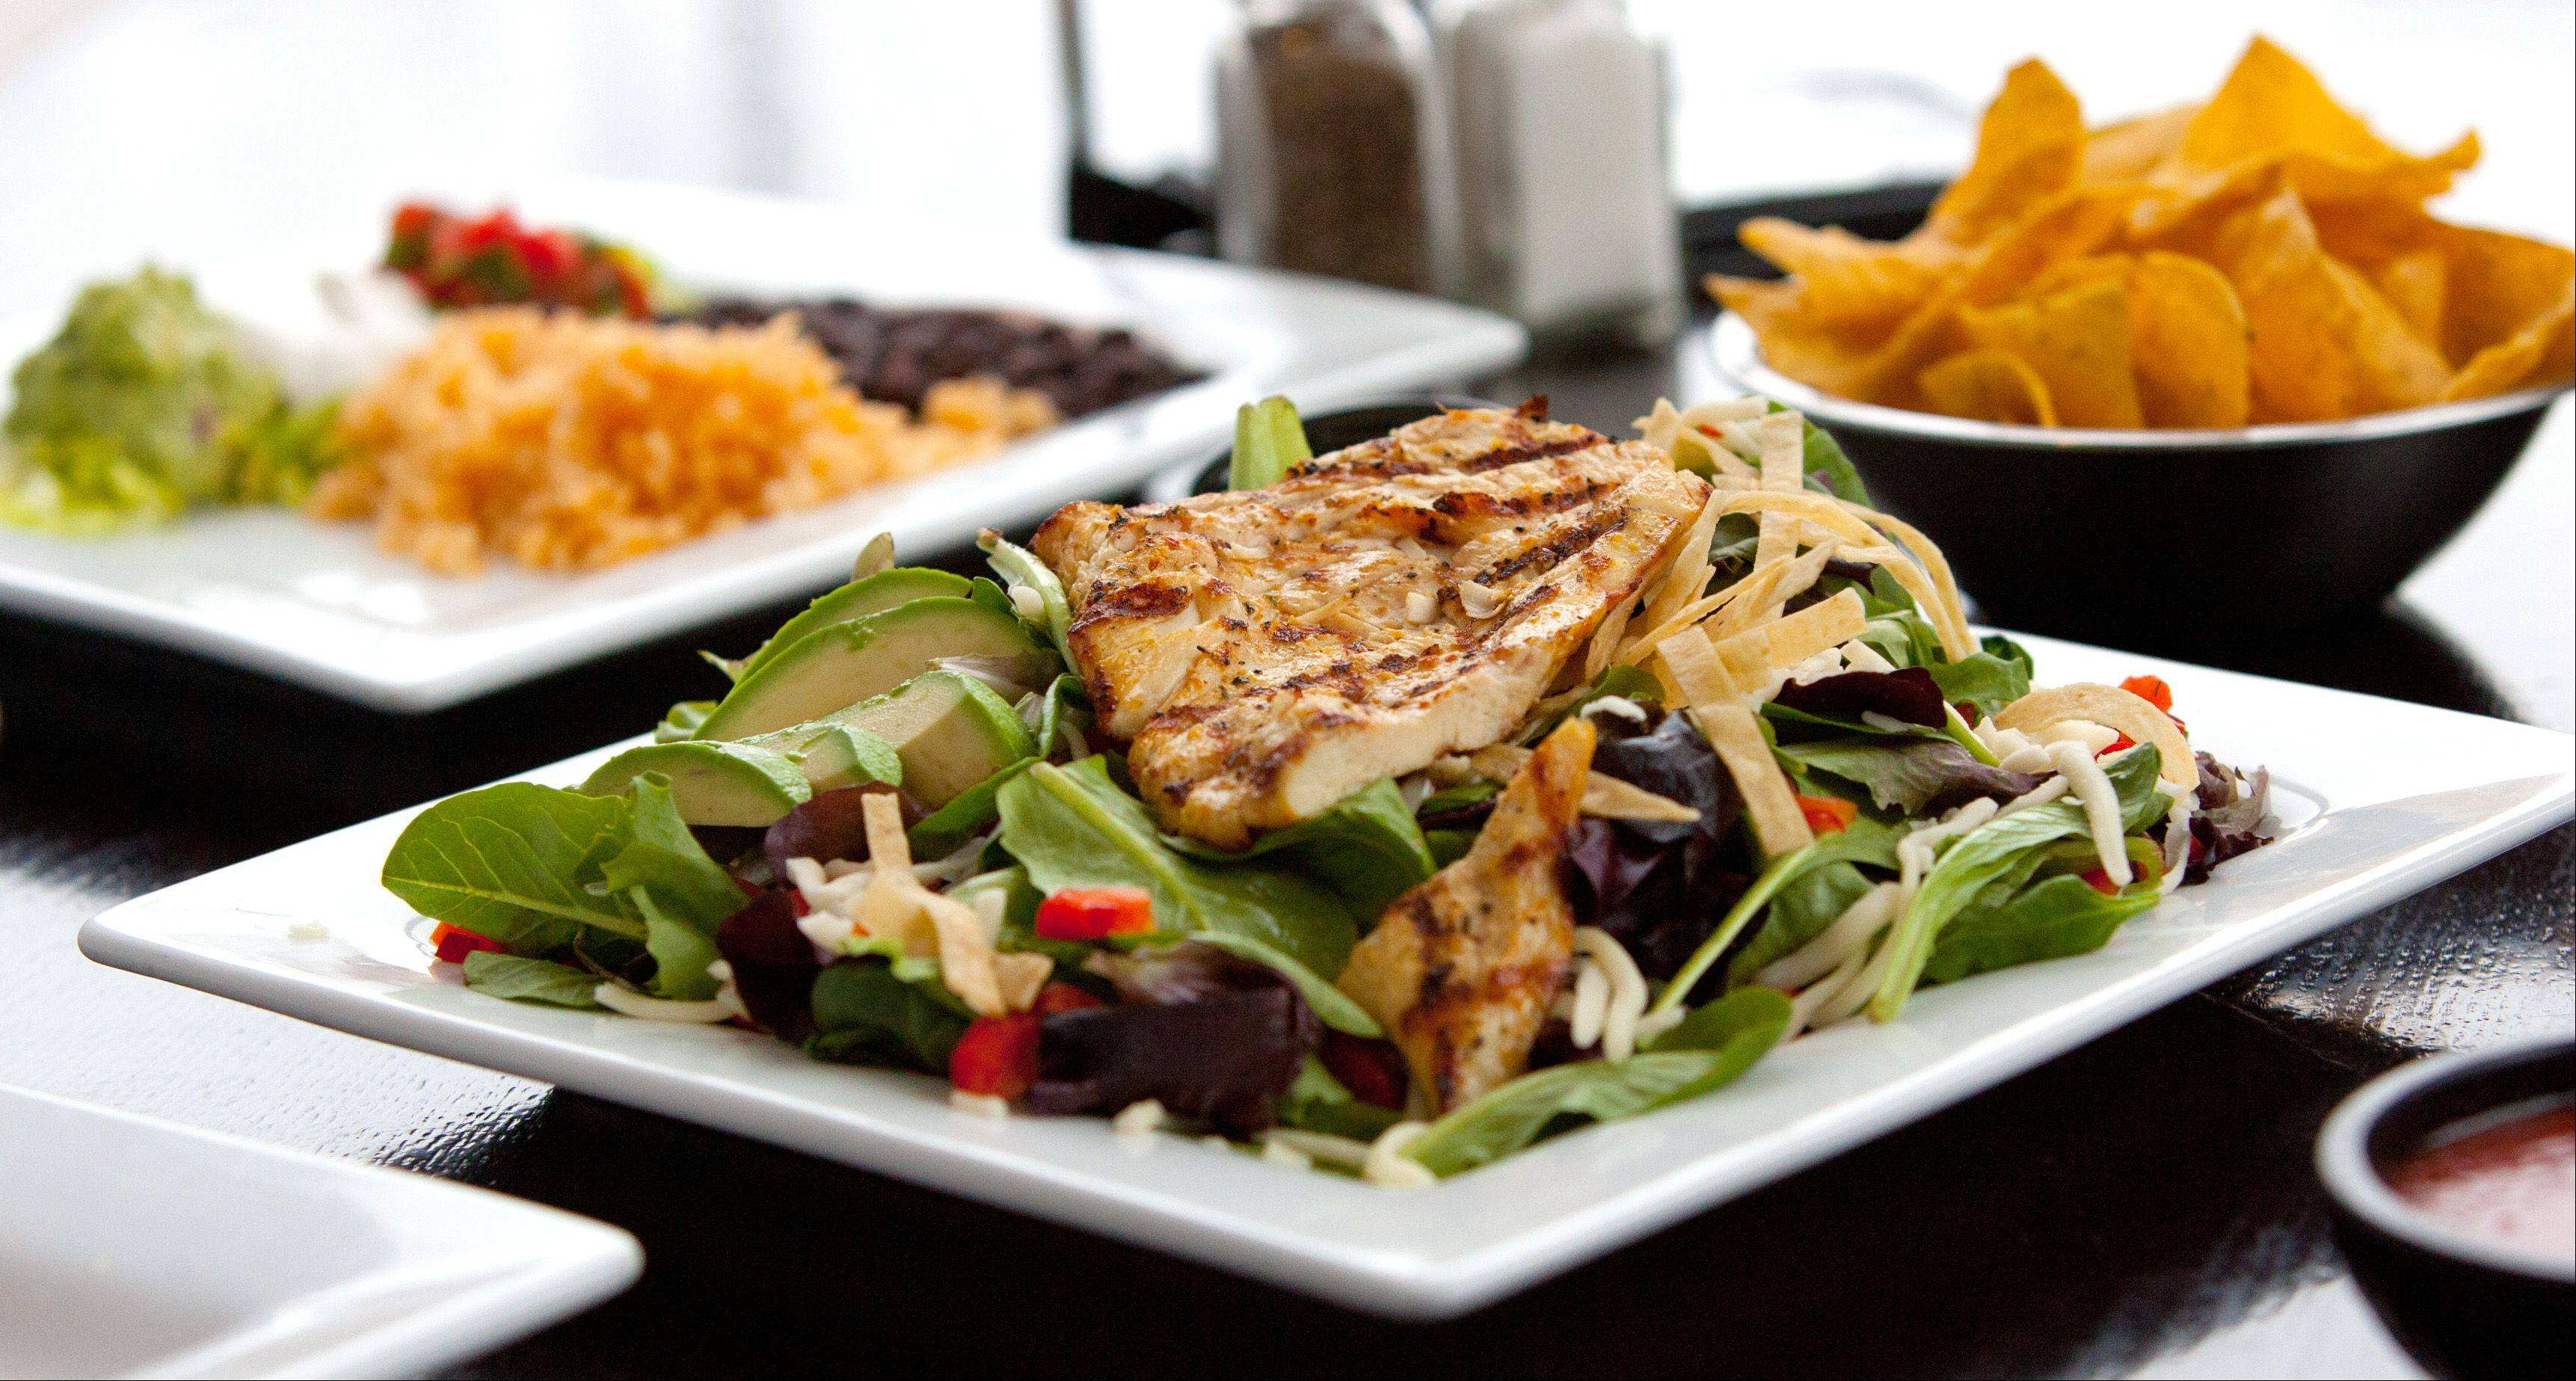 Grilled chicken breast salad is among the lighter menu items at Burrito Parrilla Mexicana in Lombard.